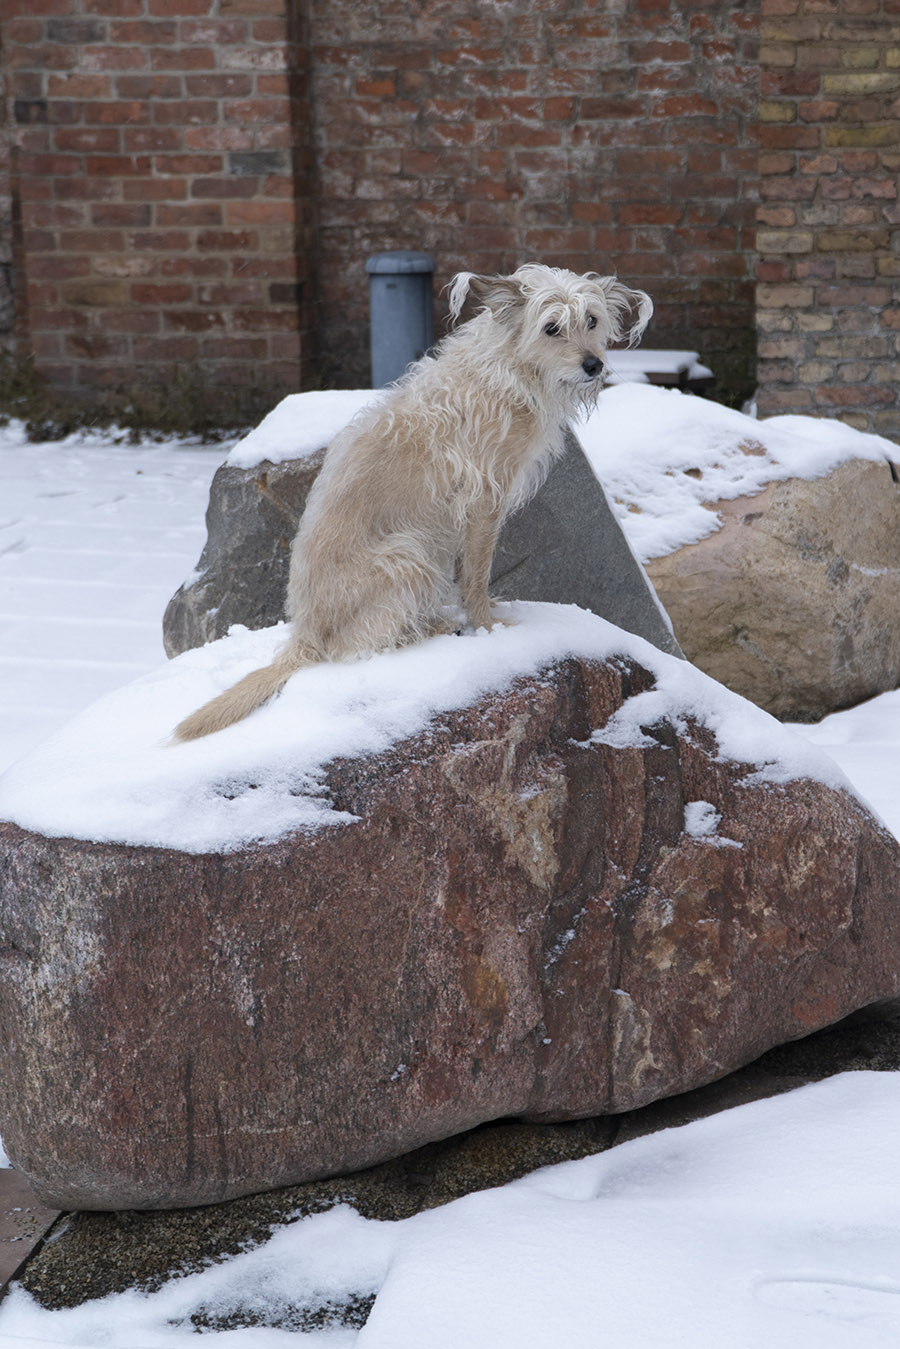 A little dog sits on a snow-covered stone in Klosterruine.